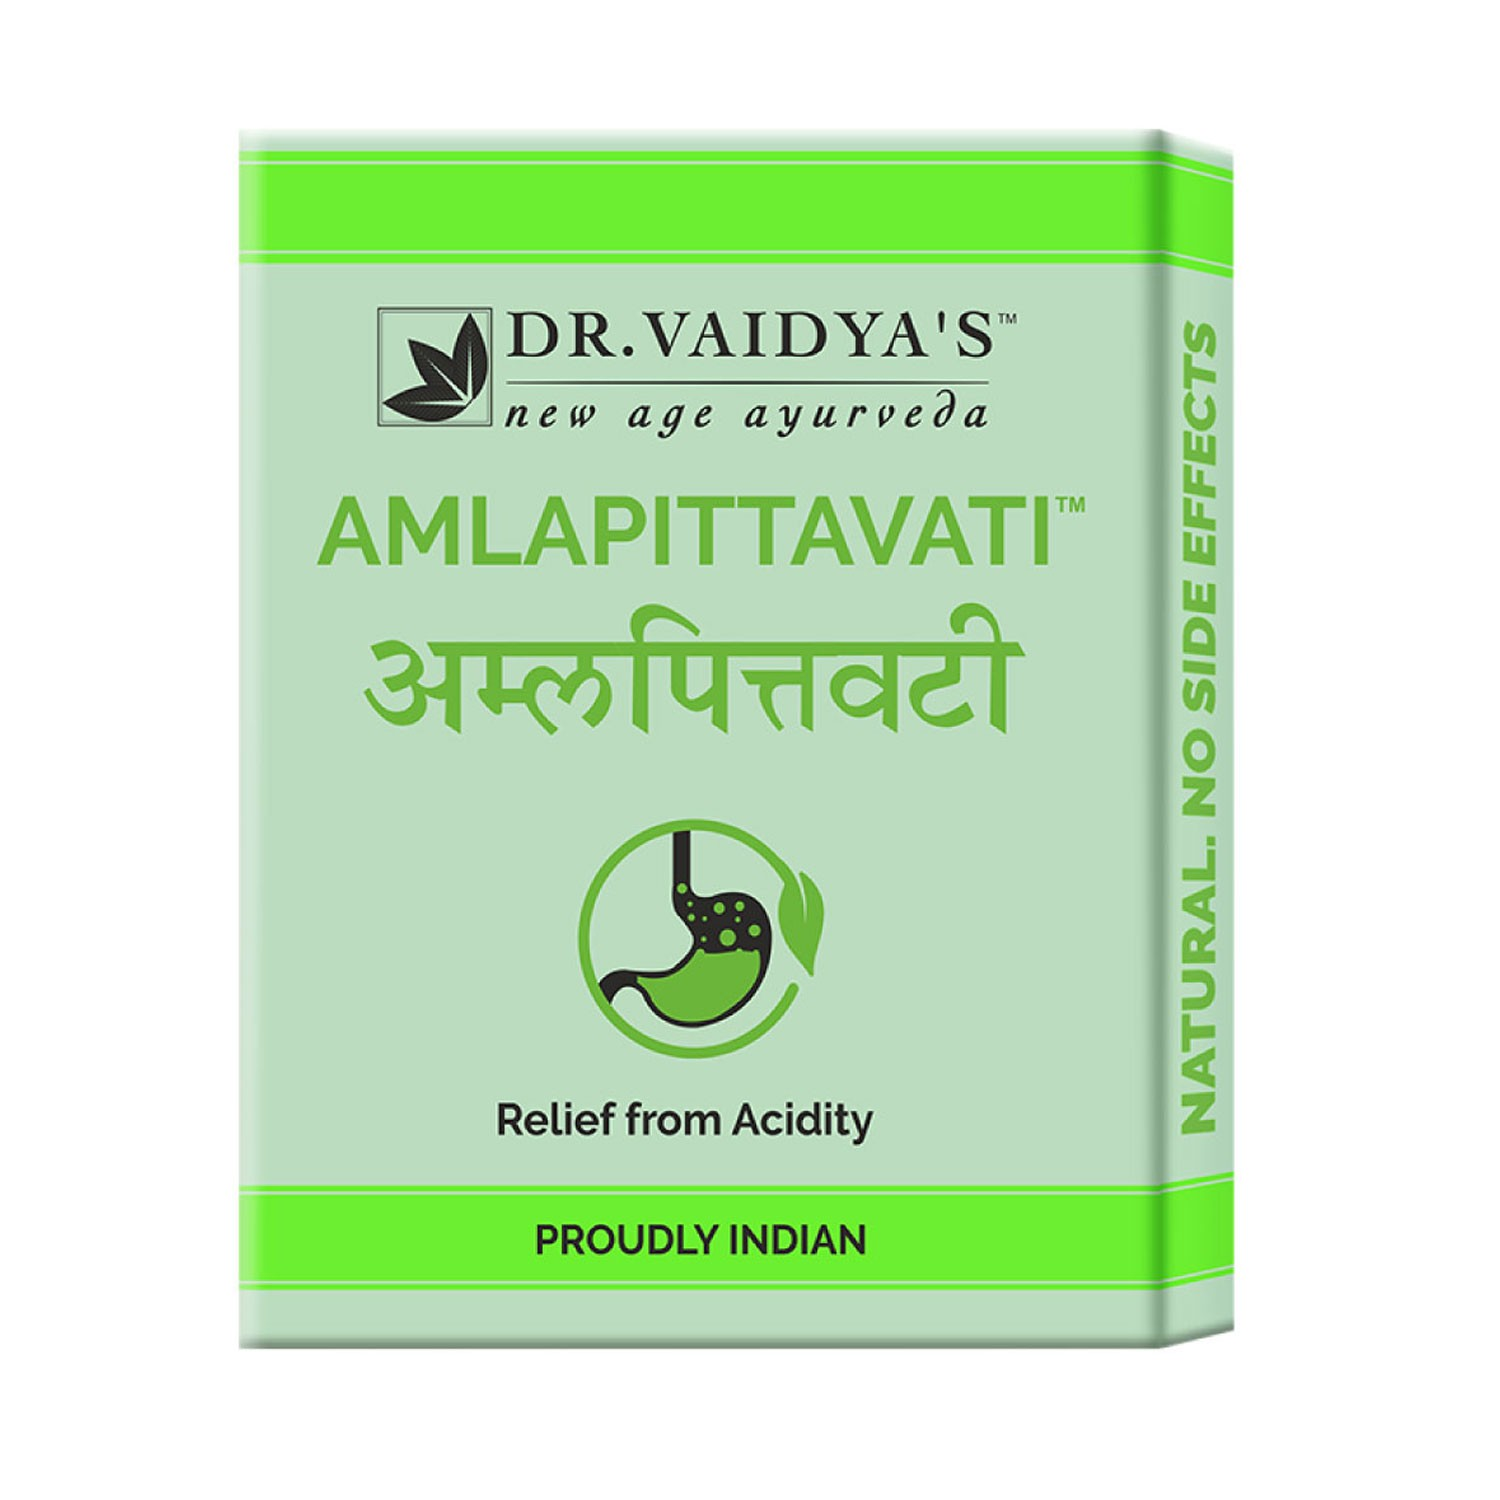 Dr. Vaidya's Amlapittavati Pills - Ayurvedic Treatment for Acidity - Pack of 3